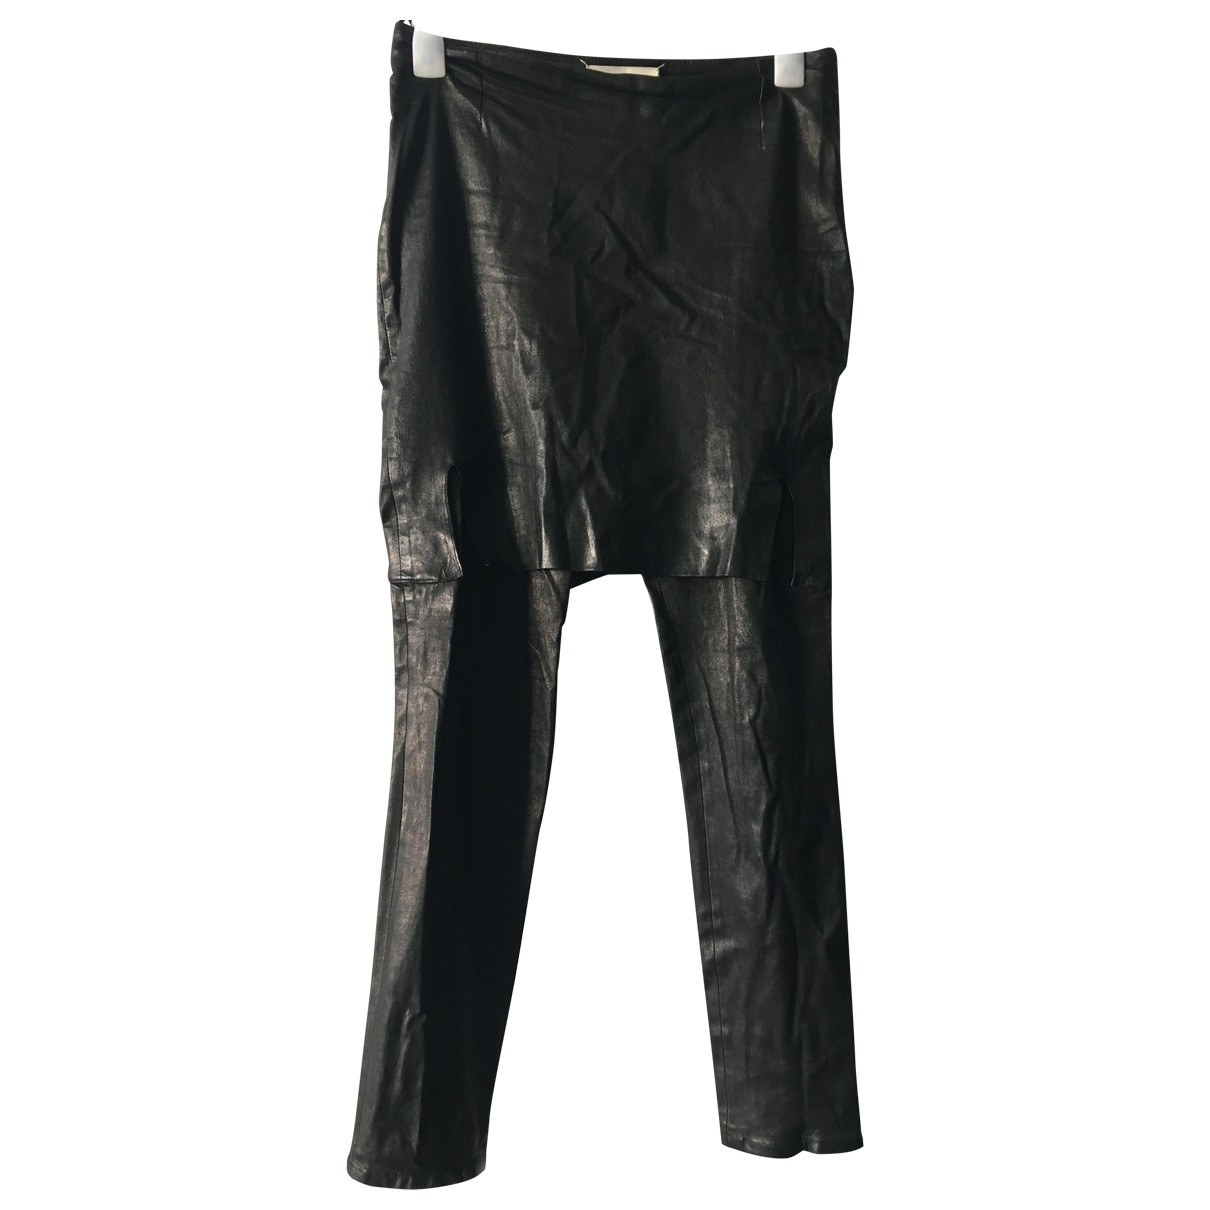 Maison Martin Margiela \N Brown Leather Trousers for Women 44 FR